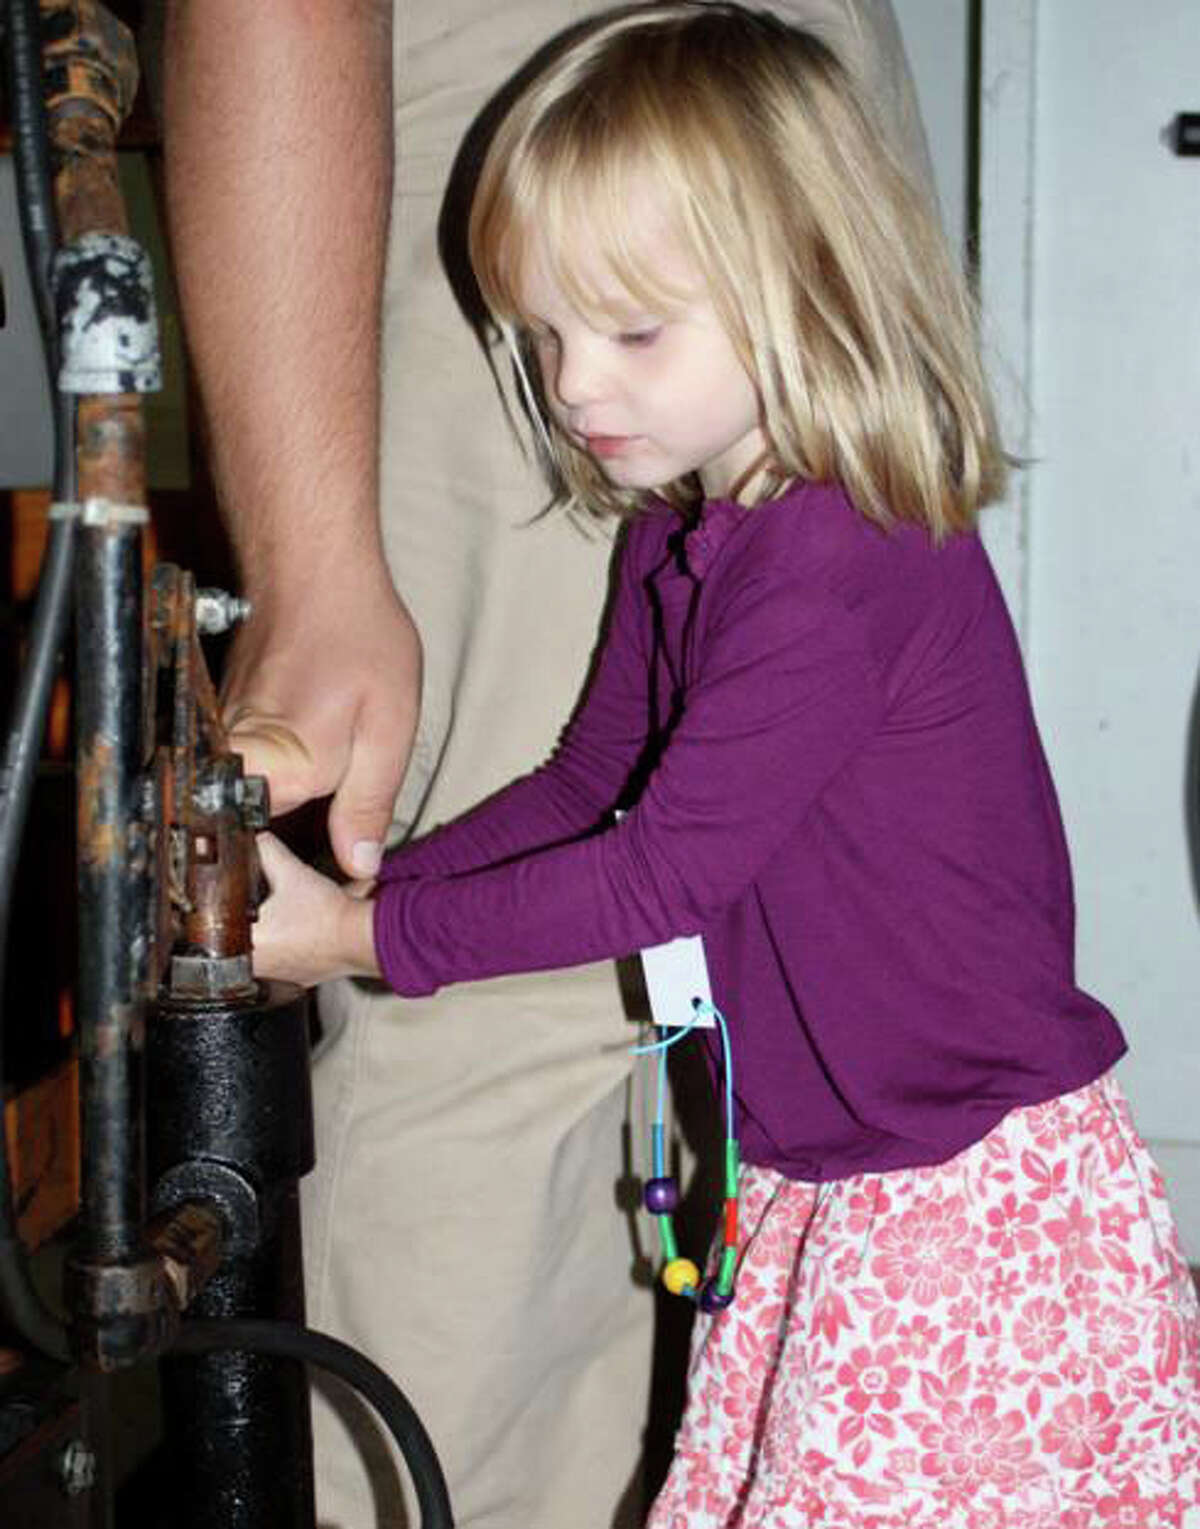 SMNS student Chloe Perkins gives the old-fashioned cider press a try.